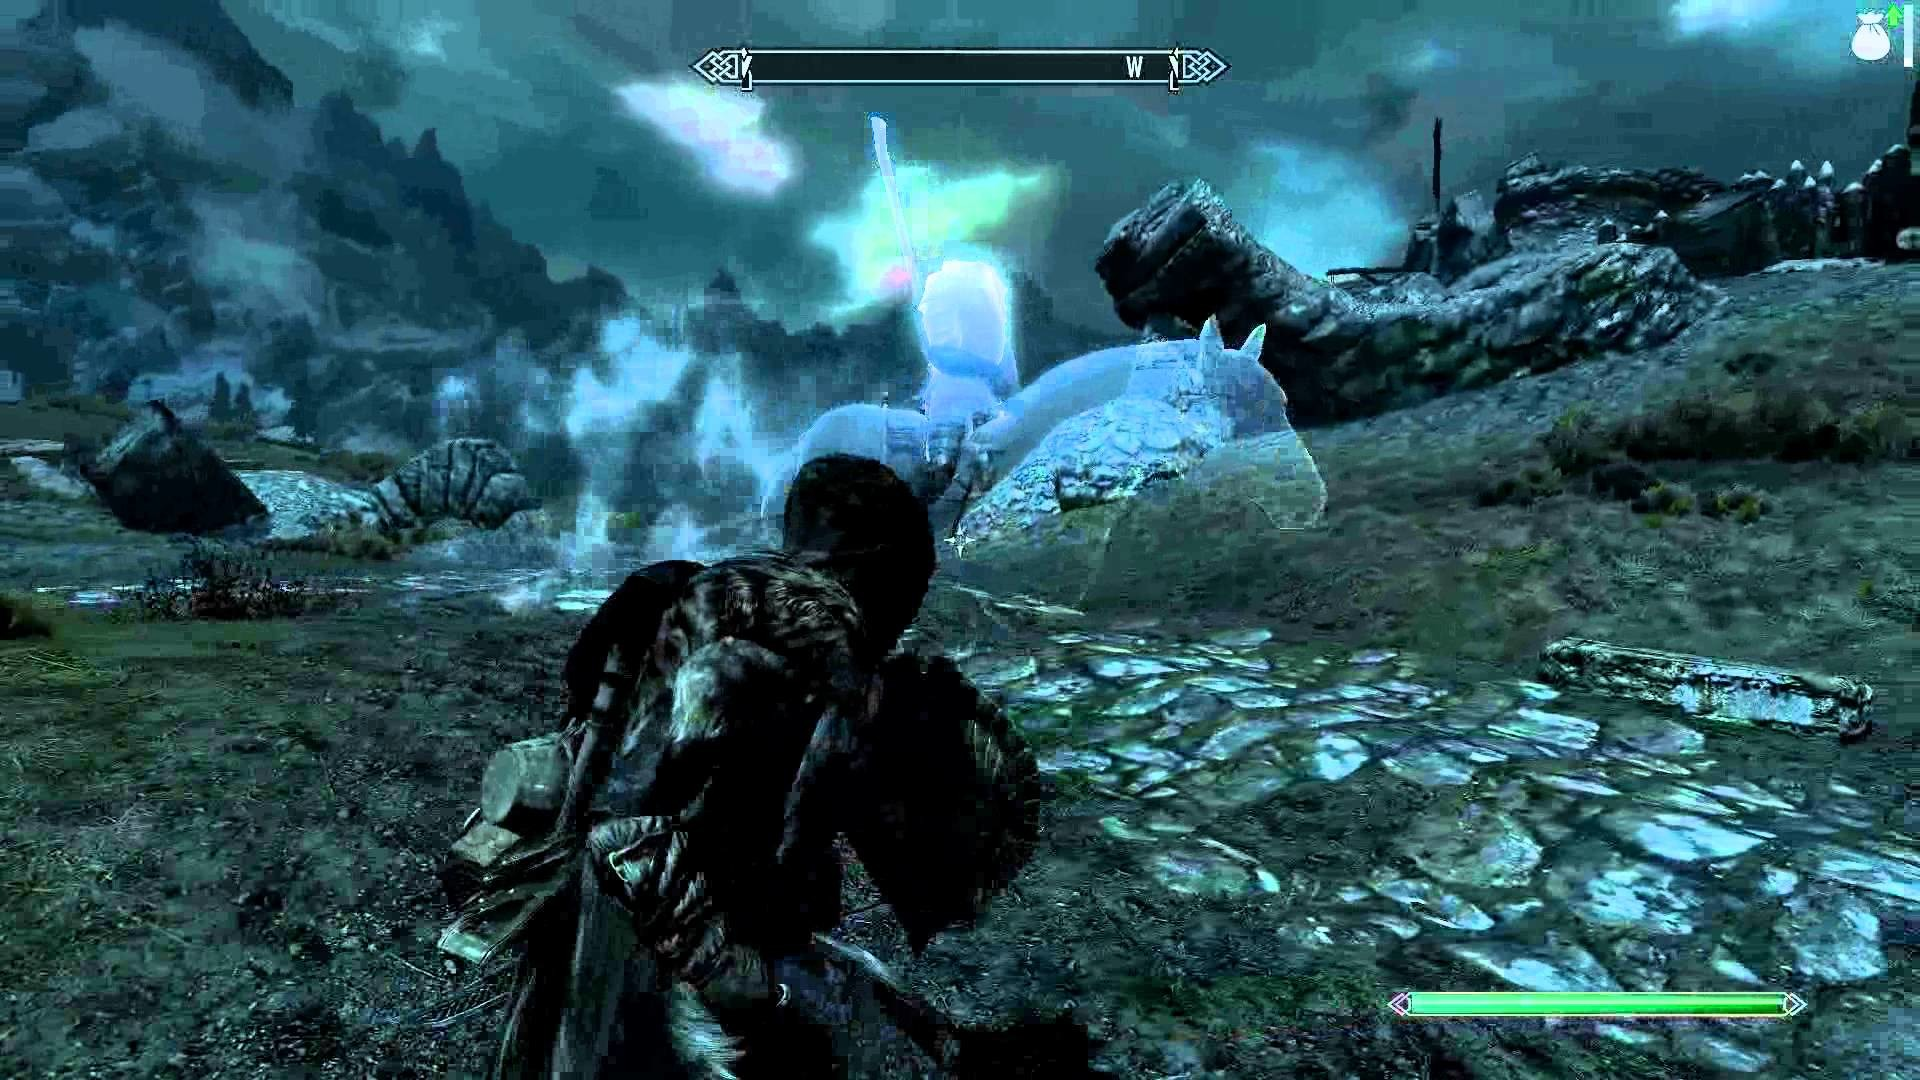 1920x1080 Skyrim - Headless Horseman gallops by